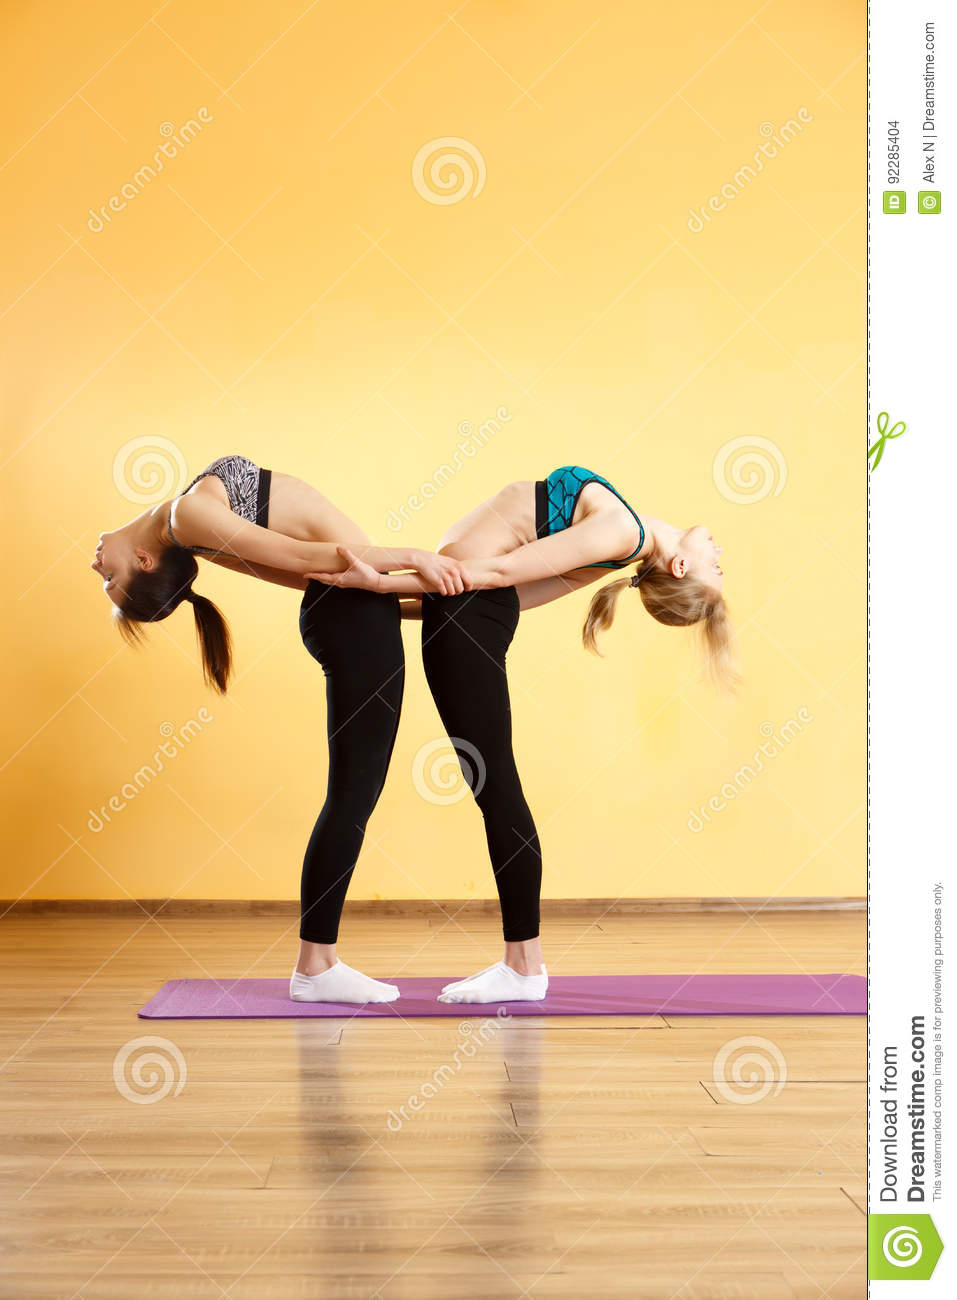 Two young athletes do yoga stock photo. Image of group - 40